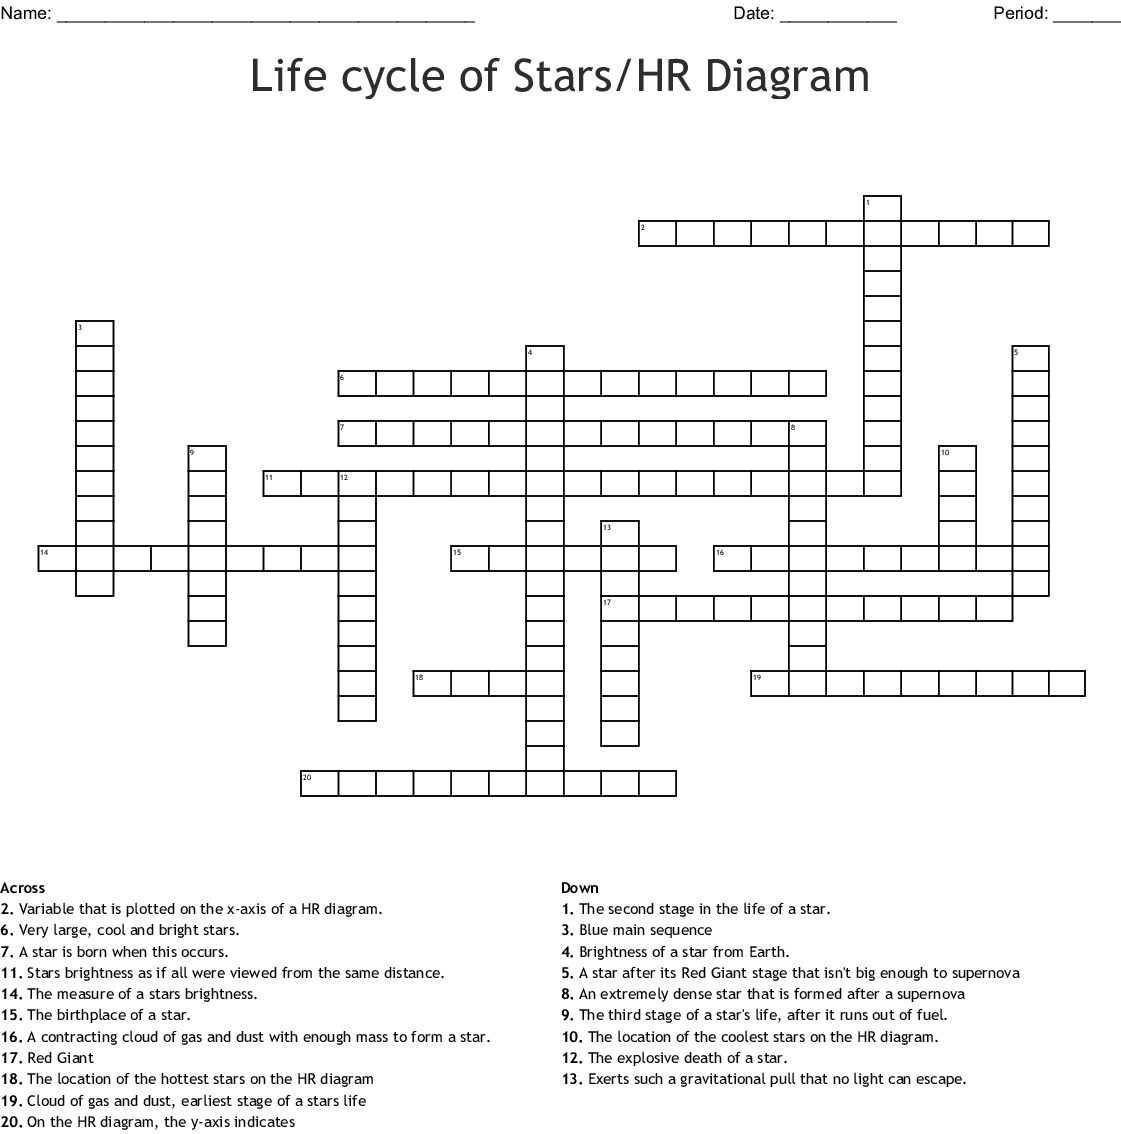 Life Cycle Of Stars Hr Diagram Crossword Wordmint